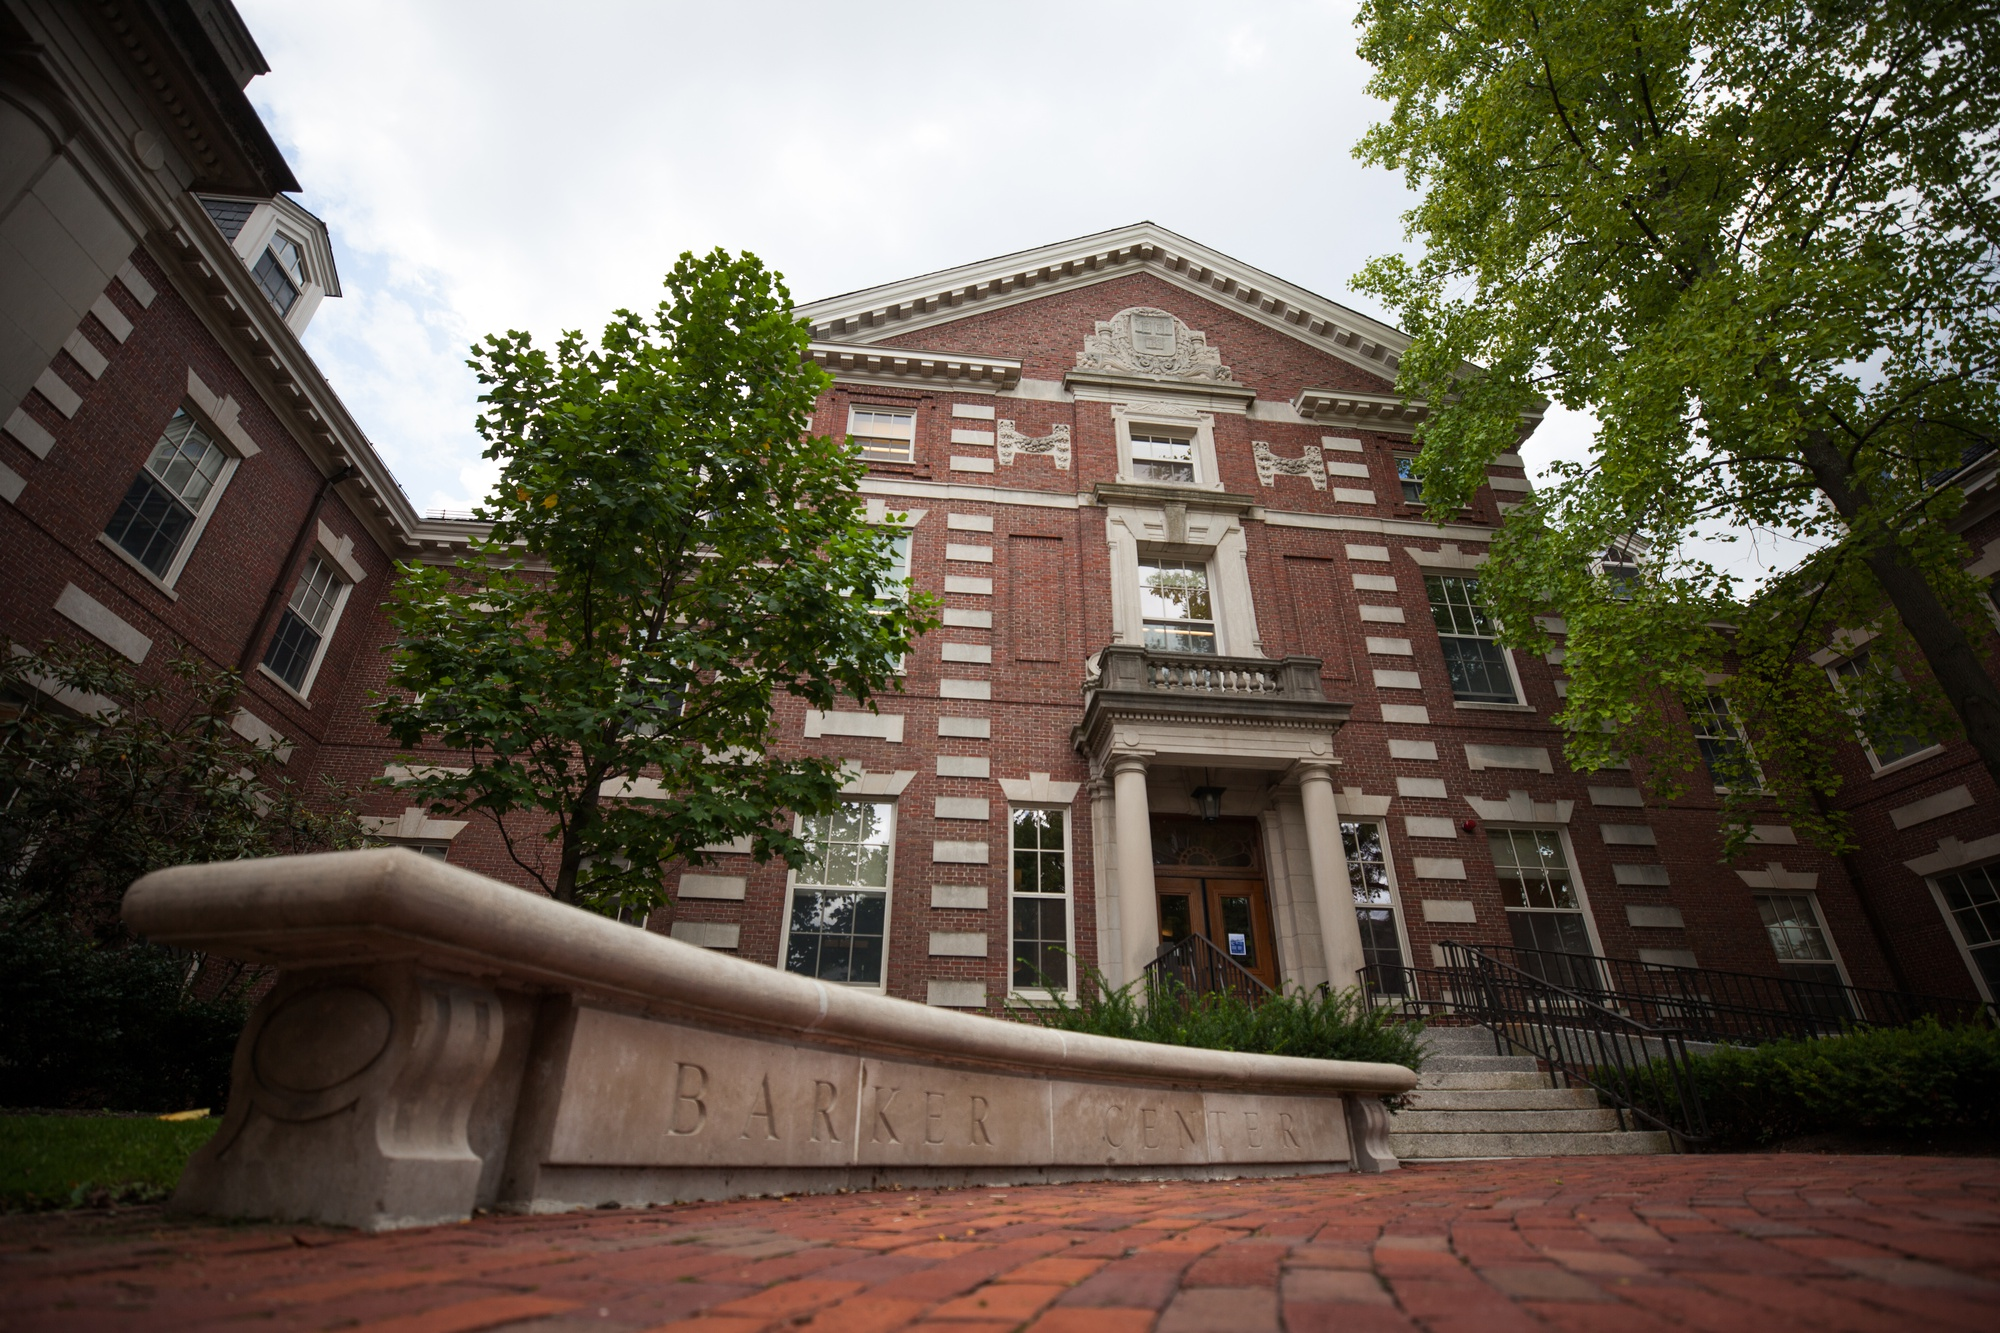 Petition Urging Harvard to Extend Non-Tenure-Track Faculty Appointments Garners More Than 800 Signatures | News | The Harvard Crimson